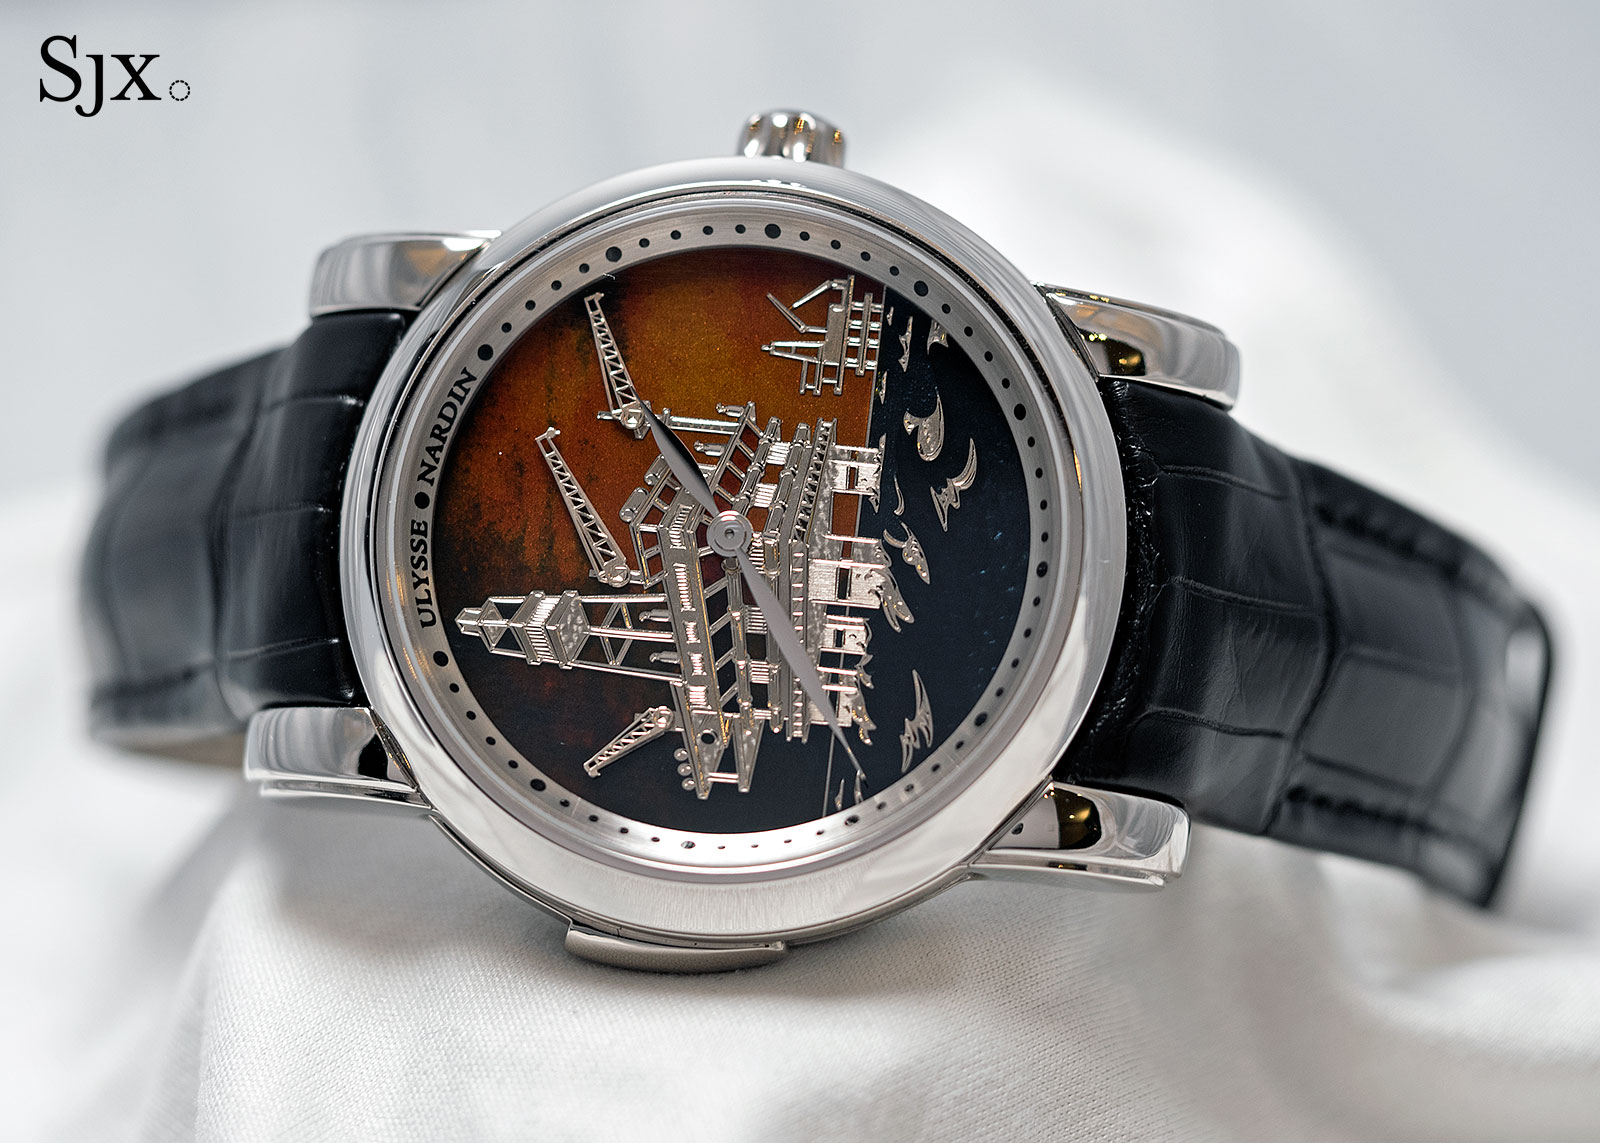 Ulysse Nardin North Sea Minute Repeater 1